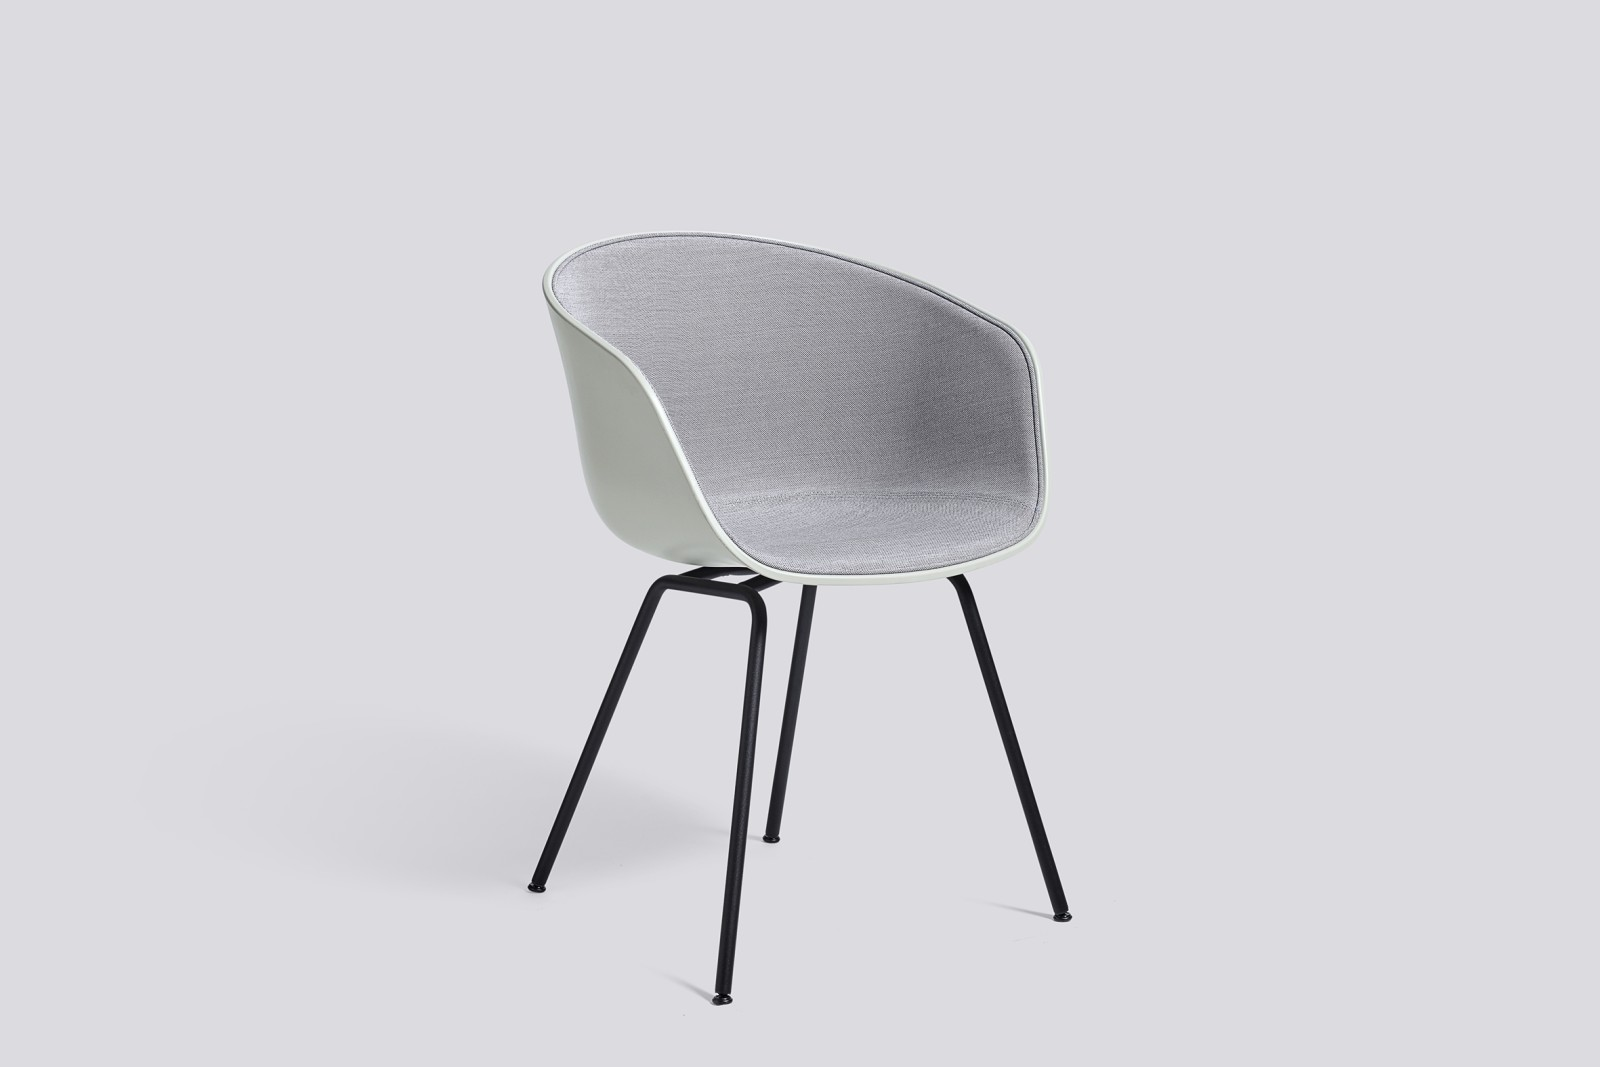 About A Chair AAC26 with front upholstery Surface by Hay 120, Black, White Powder Coated Steel